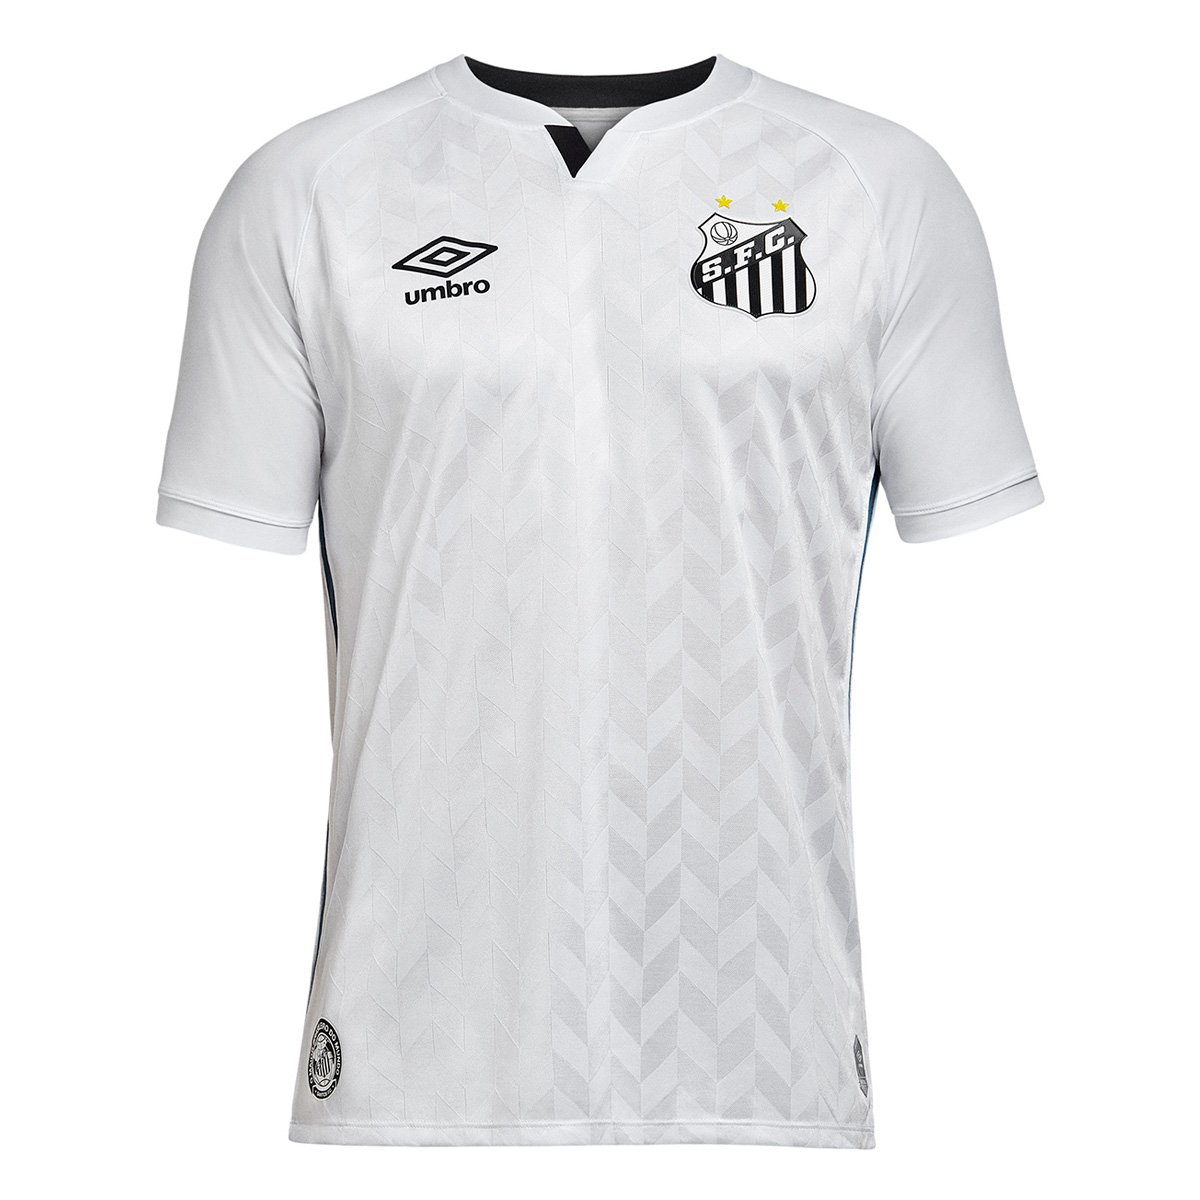 https://assets-mantosdofutebol.sfo2.digitaloceanspaces.com/wp-content/uploads/2020/05/Camisas-do-Santos-FC-2020-2021-Umbro-Branca-1.jpg